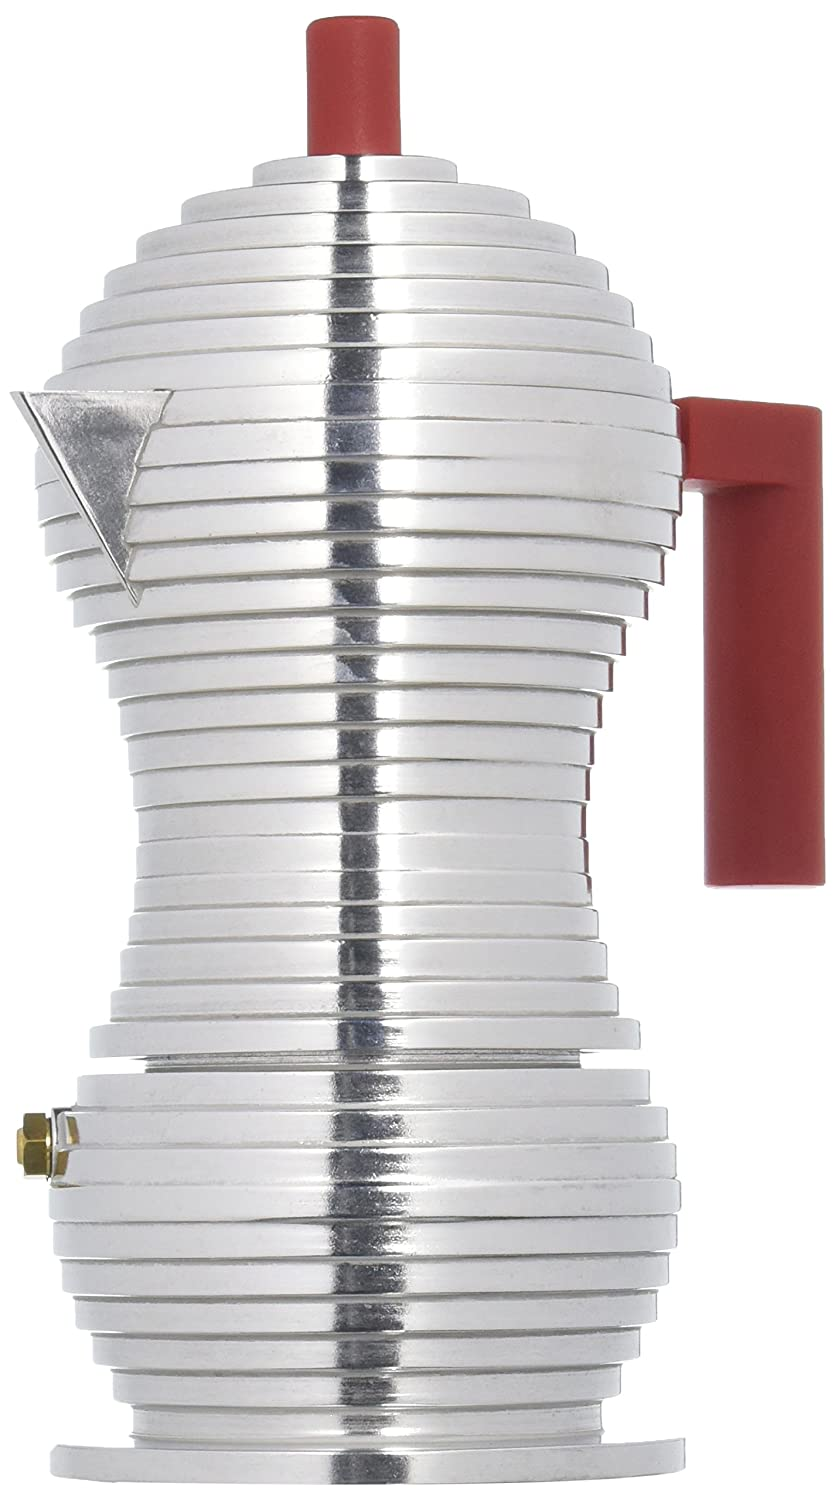 Alessi MDL02/3 RPulcina Stove Top Espresso 3 Cup Coffee Maker in Aluminum Casting Handle And Knob in Pa, Red